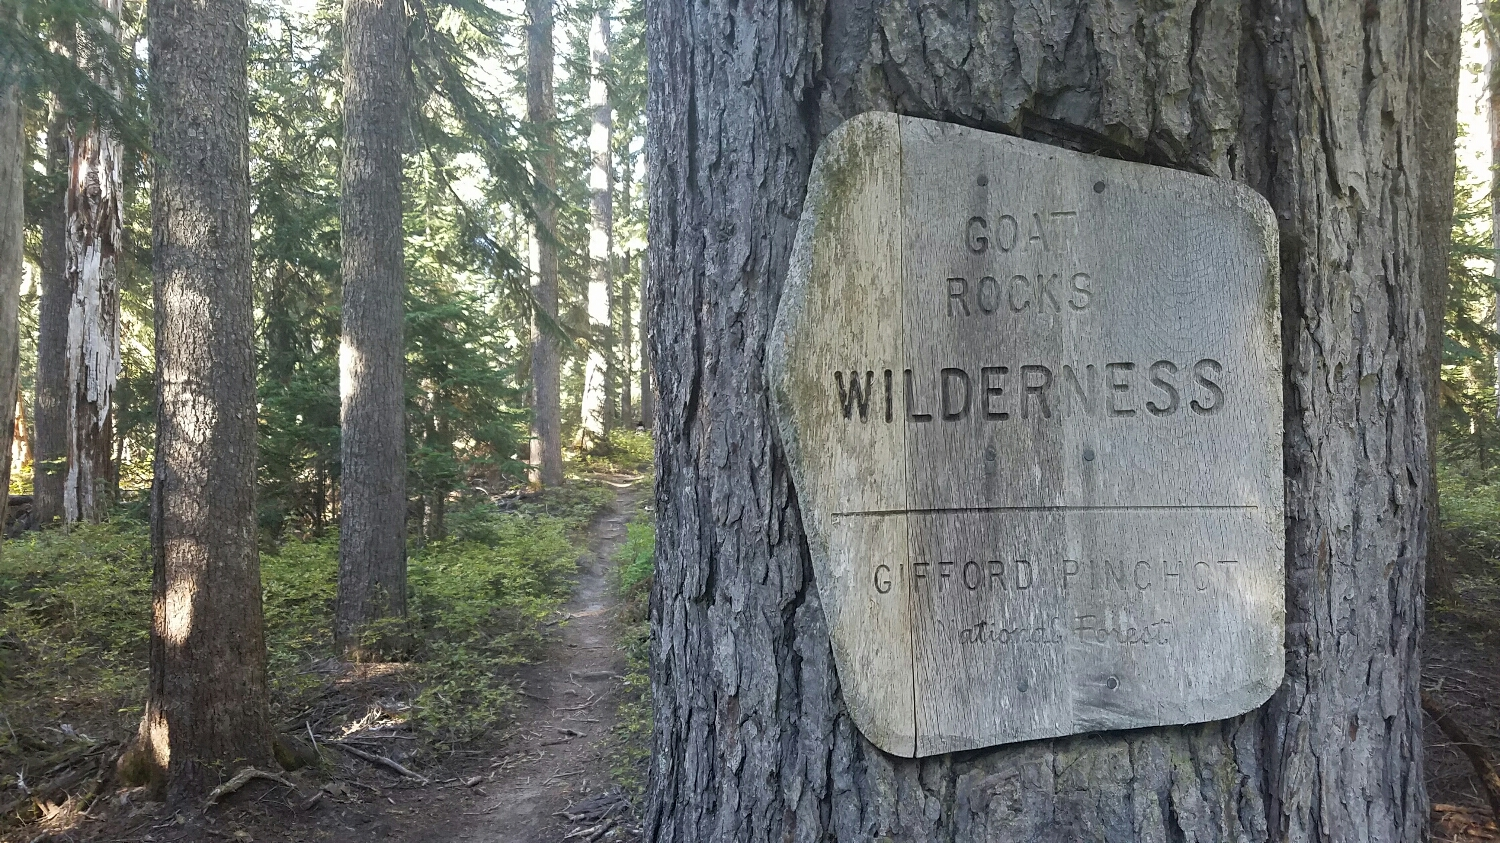 the Goat Rocks wilderness has been one of my favorite places on trail and I was so lucky to be there while there was good weather!